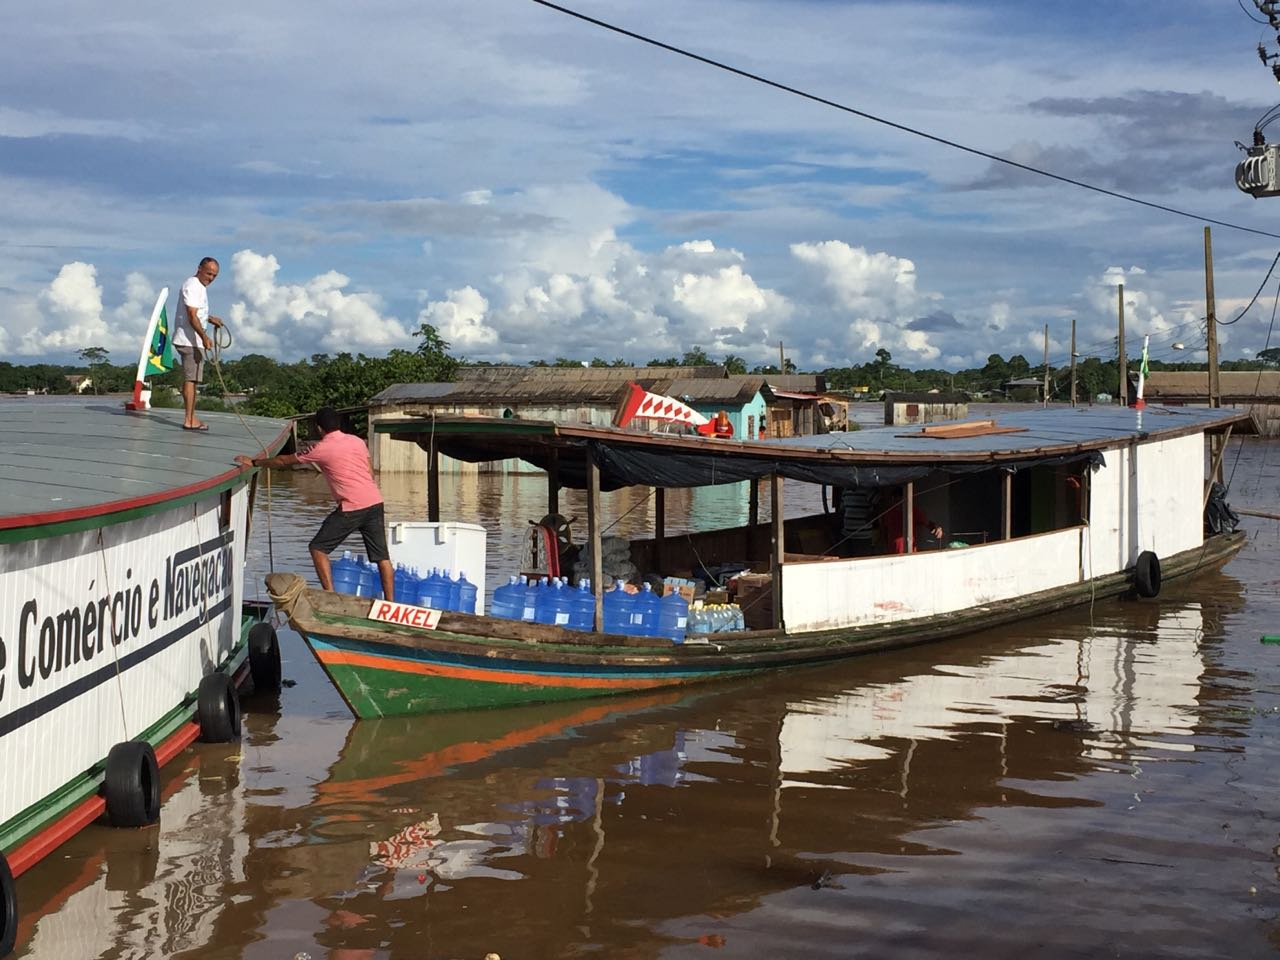 Our supply boat, the Rakel, getting loaded